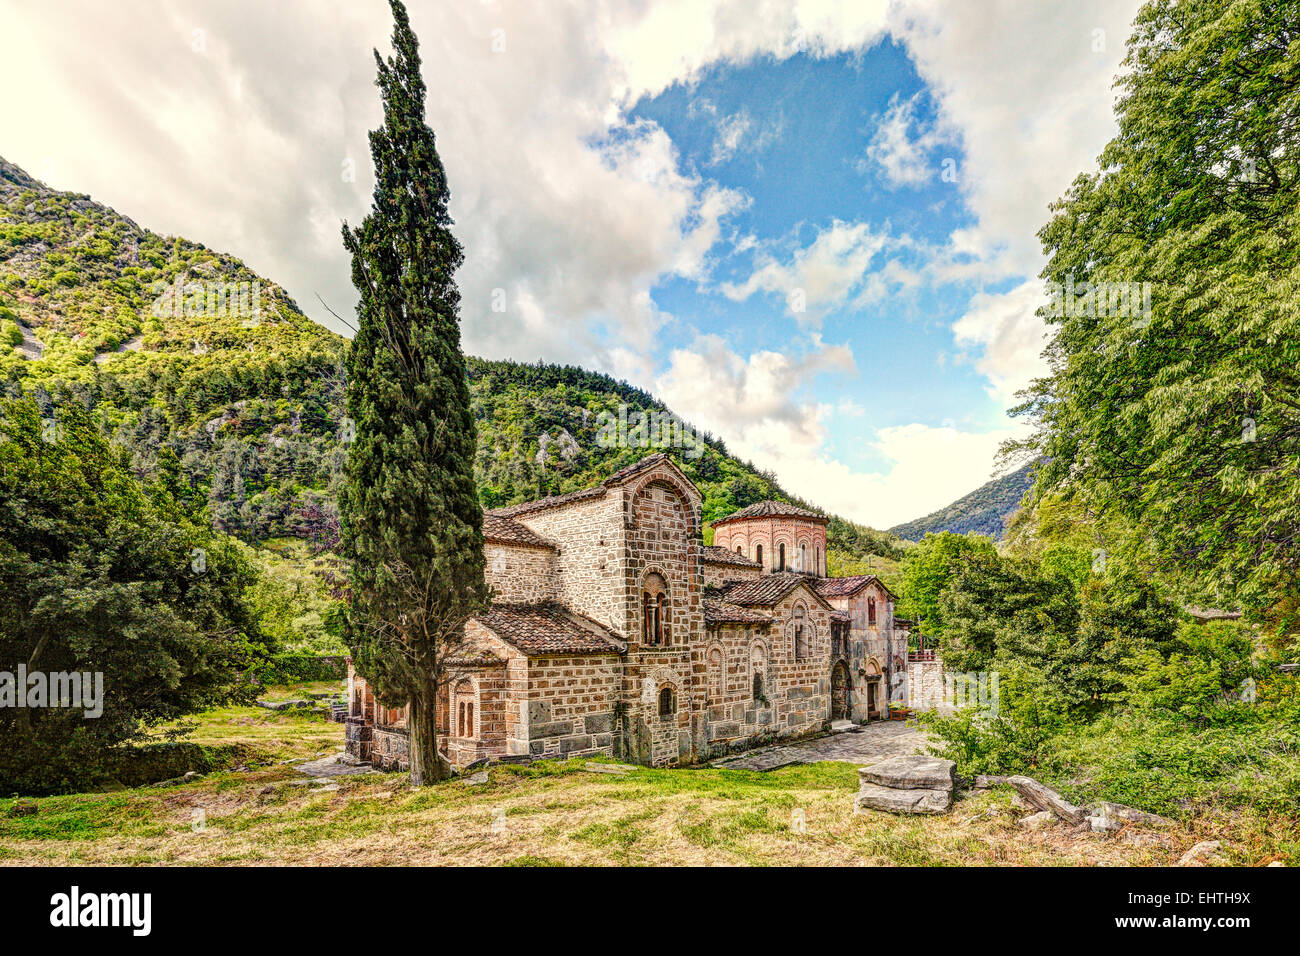 The Church of Porta Panagia at Pyli, Greece - Stock Image